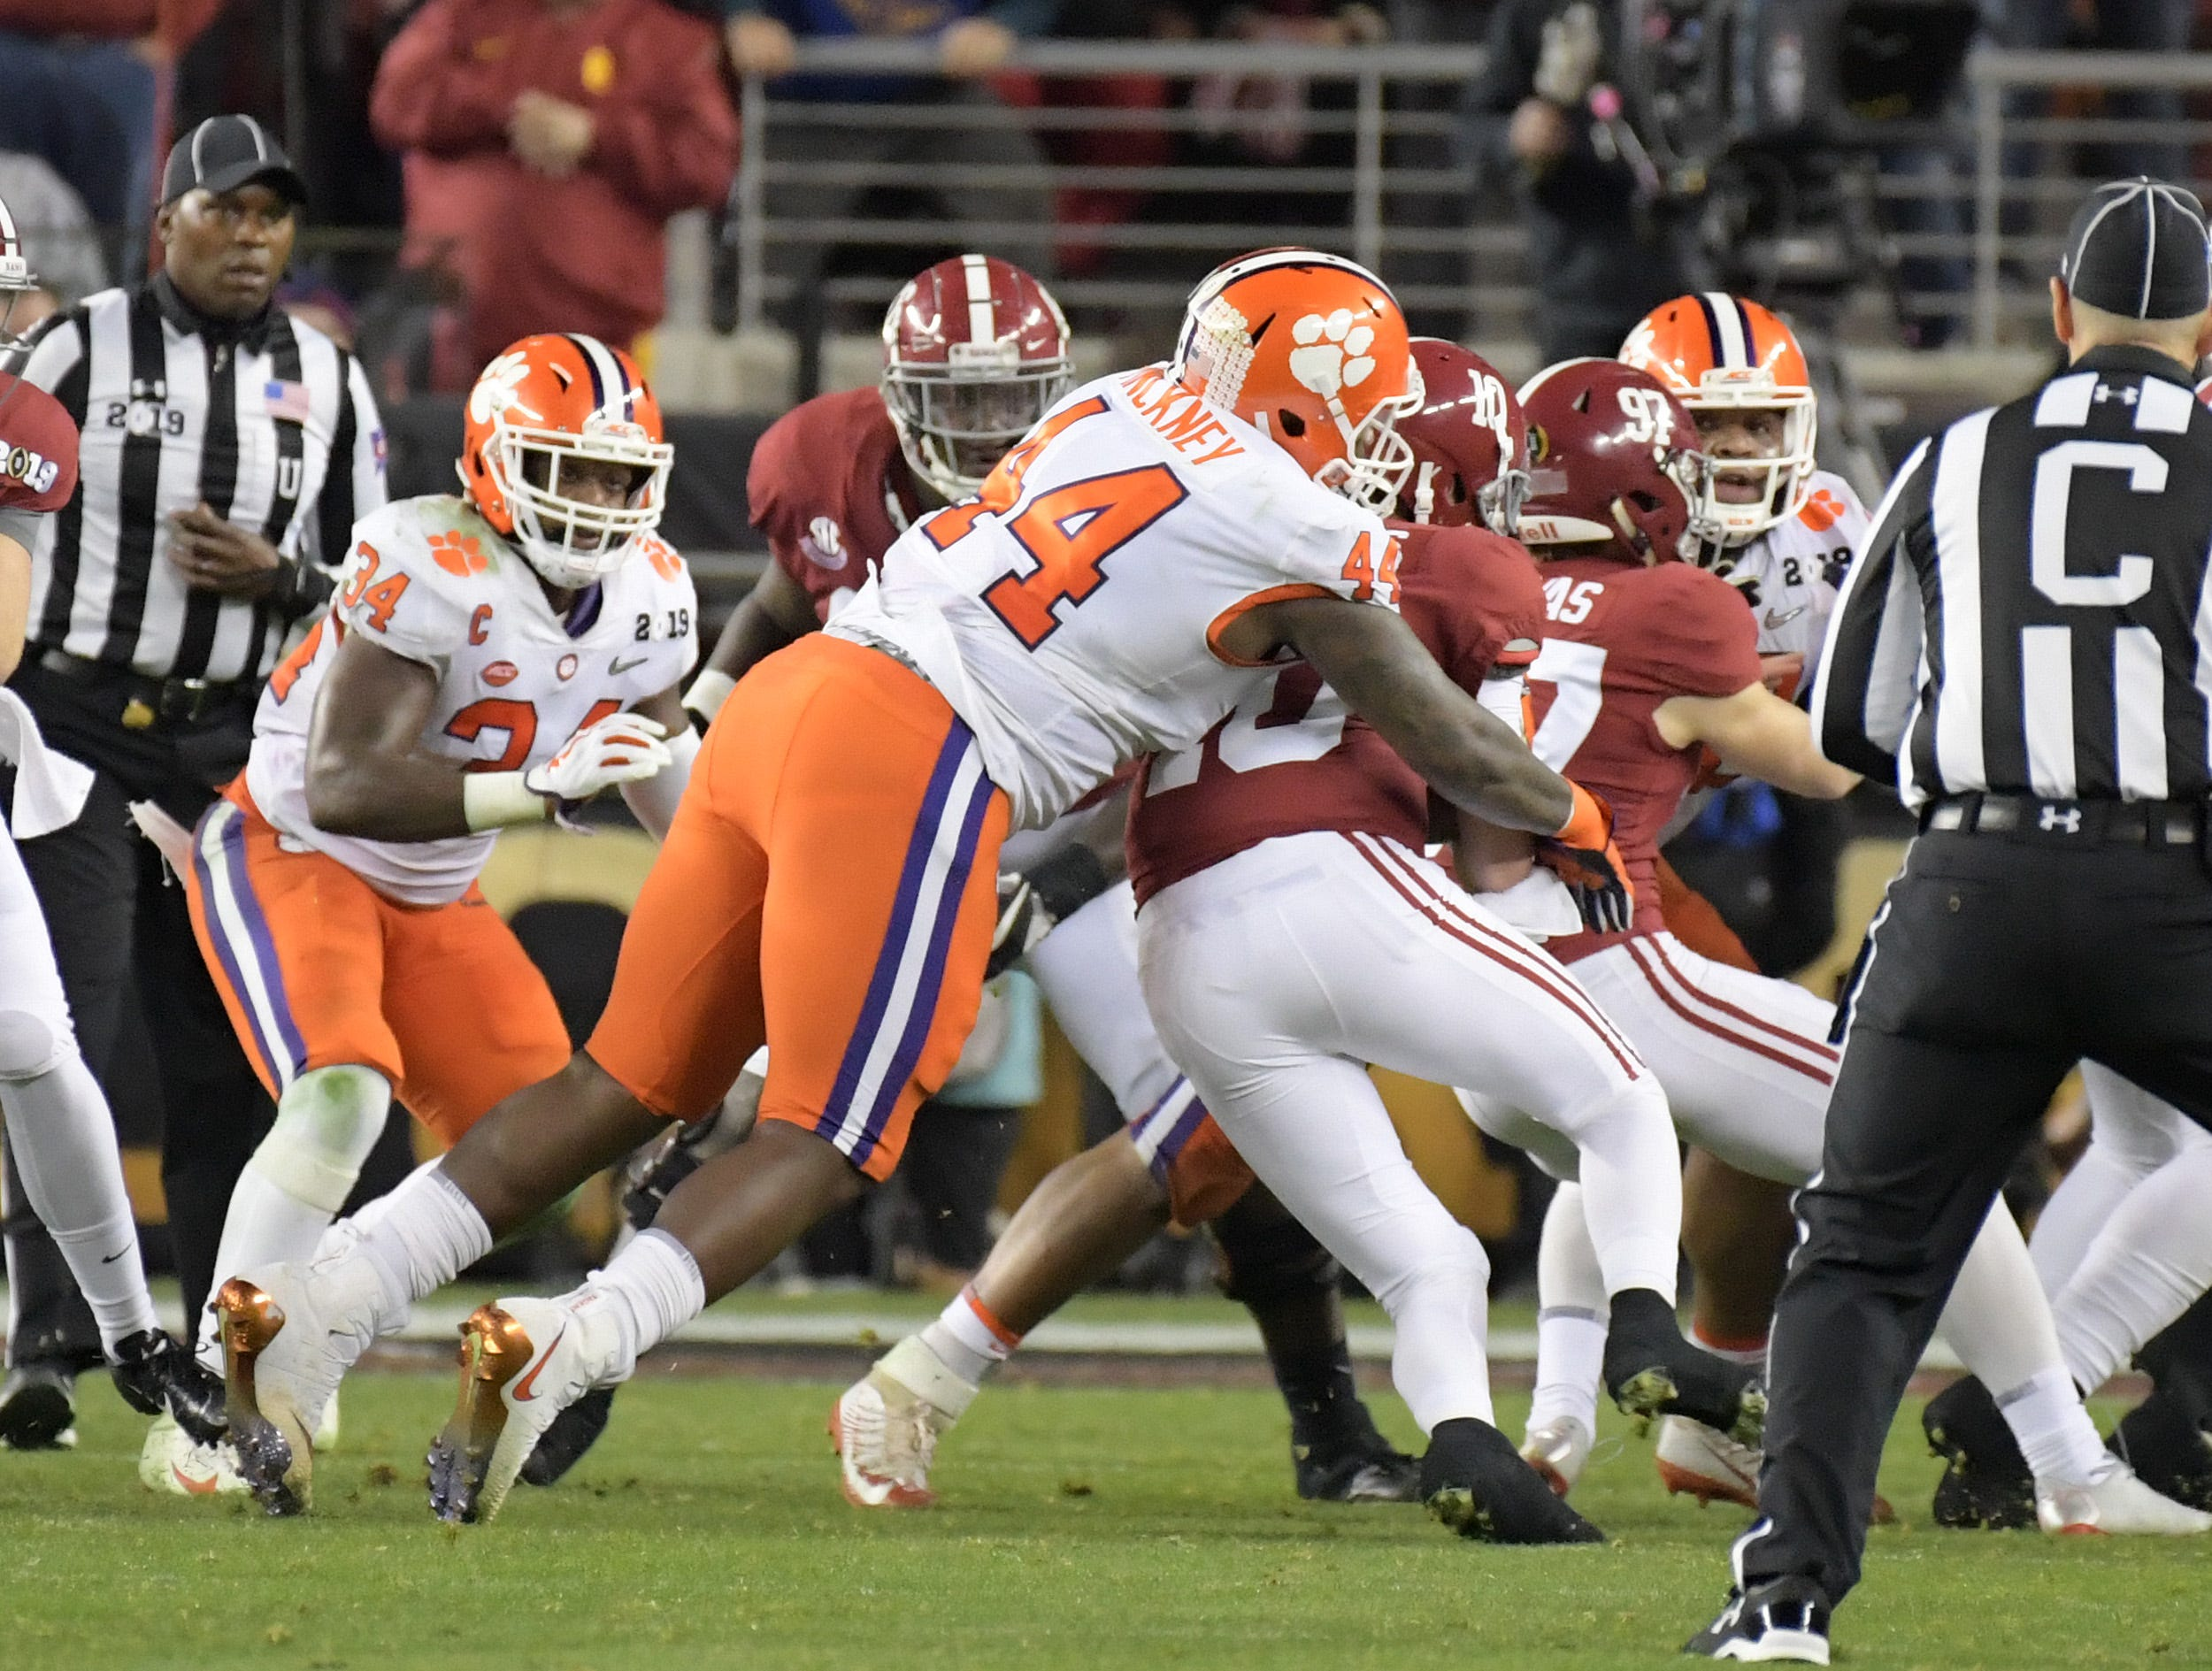 Jan 7, 2019; Santa Clara, CA, USA; Clemson Tigers defensive tackle Nyles Pinckney (44) tackles Alabama Crimson Tide quarterback Mac Jones (10) in the third quarter in the during the 2019 College Football Playoff Championship game at Levi's Stadium. Mandatory Credit: Kirby Lee-USA TODAY Sports